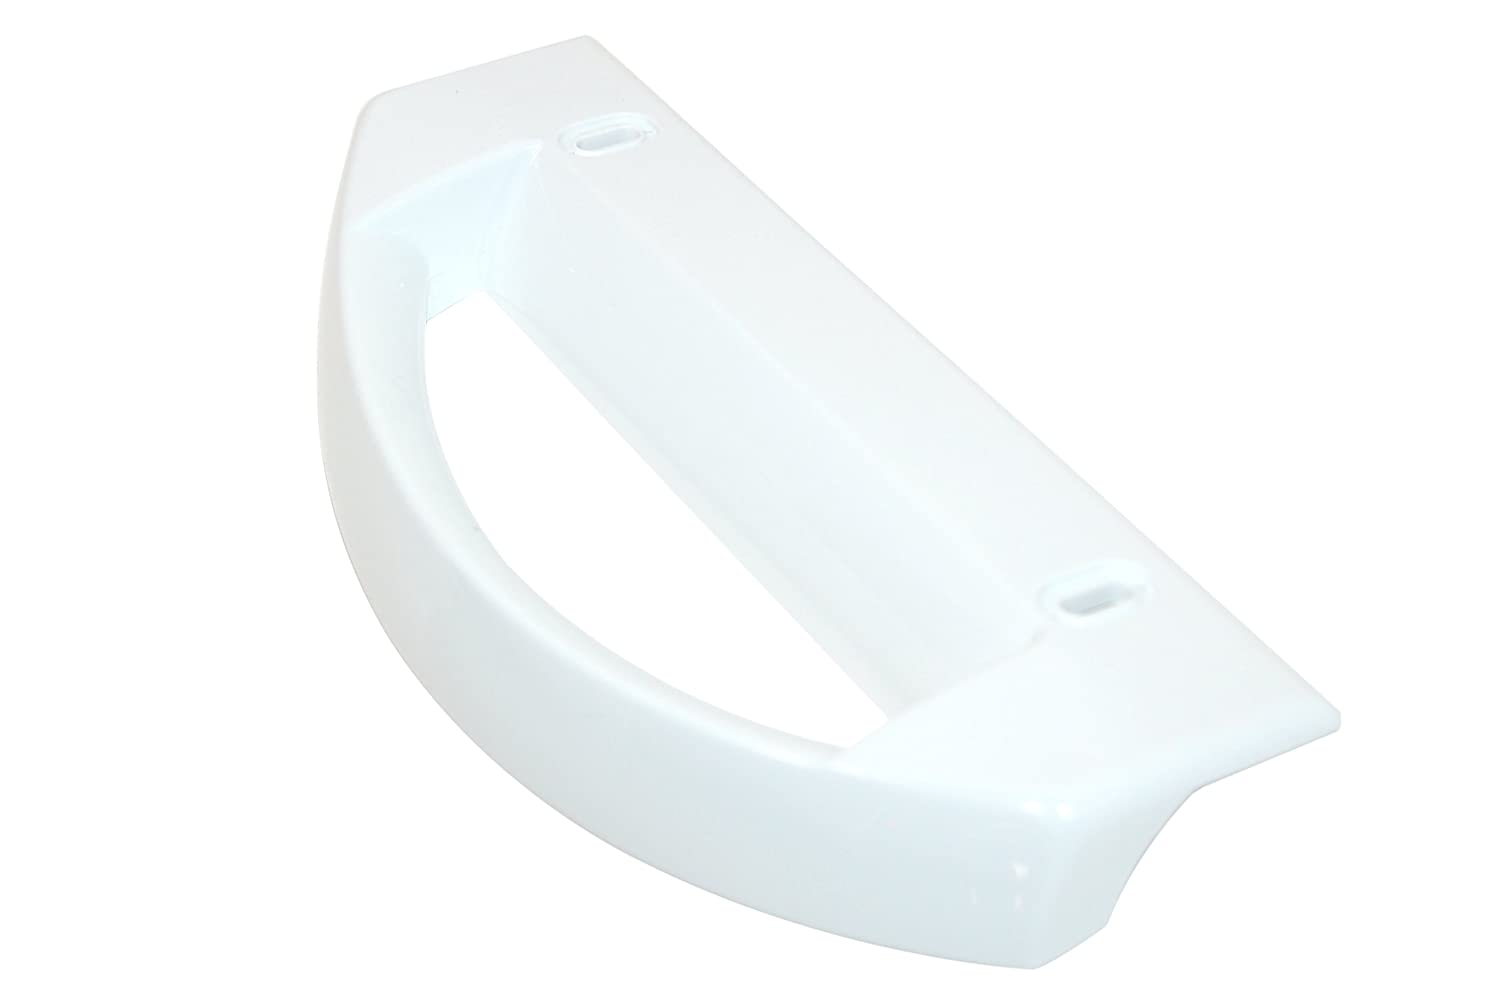 AEG Fridge Freezer Door Handle. Genuine part number 2062808015